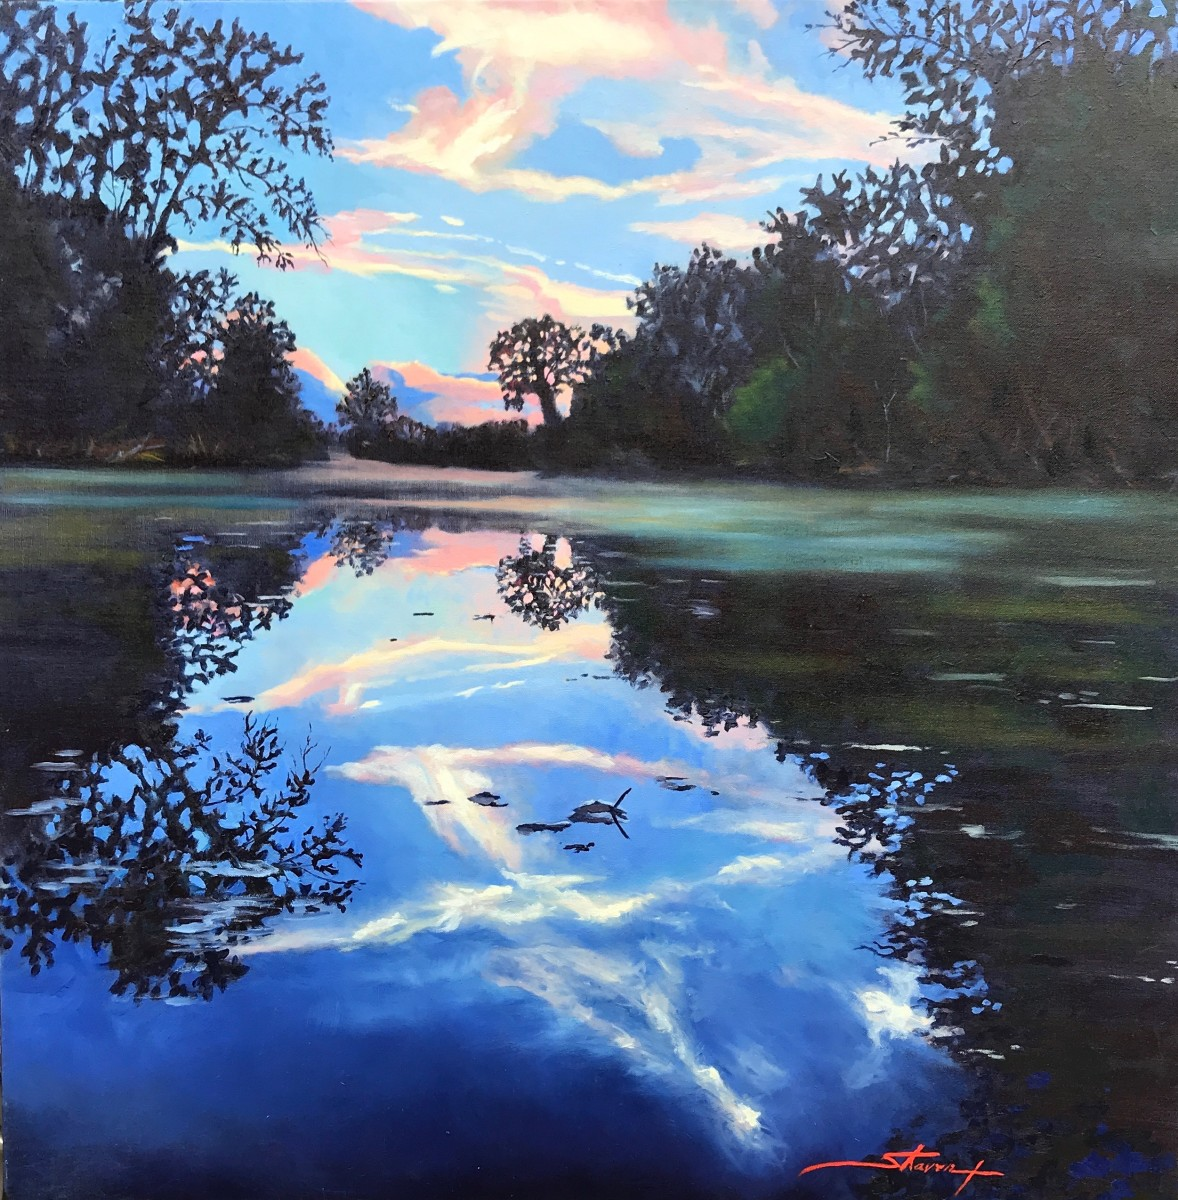 Bledsoe Evening by Sharon Rusch Shaver